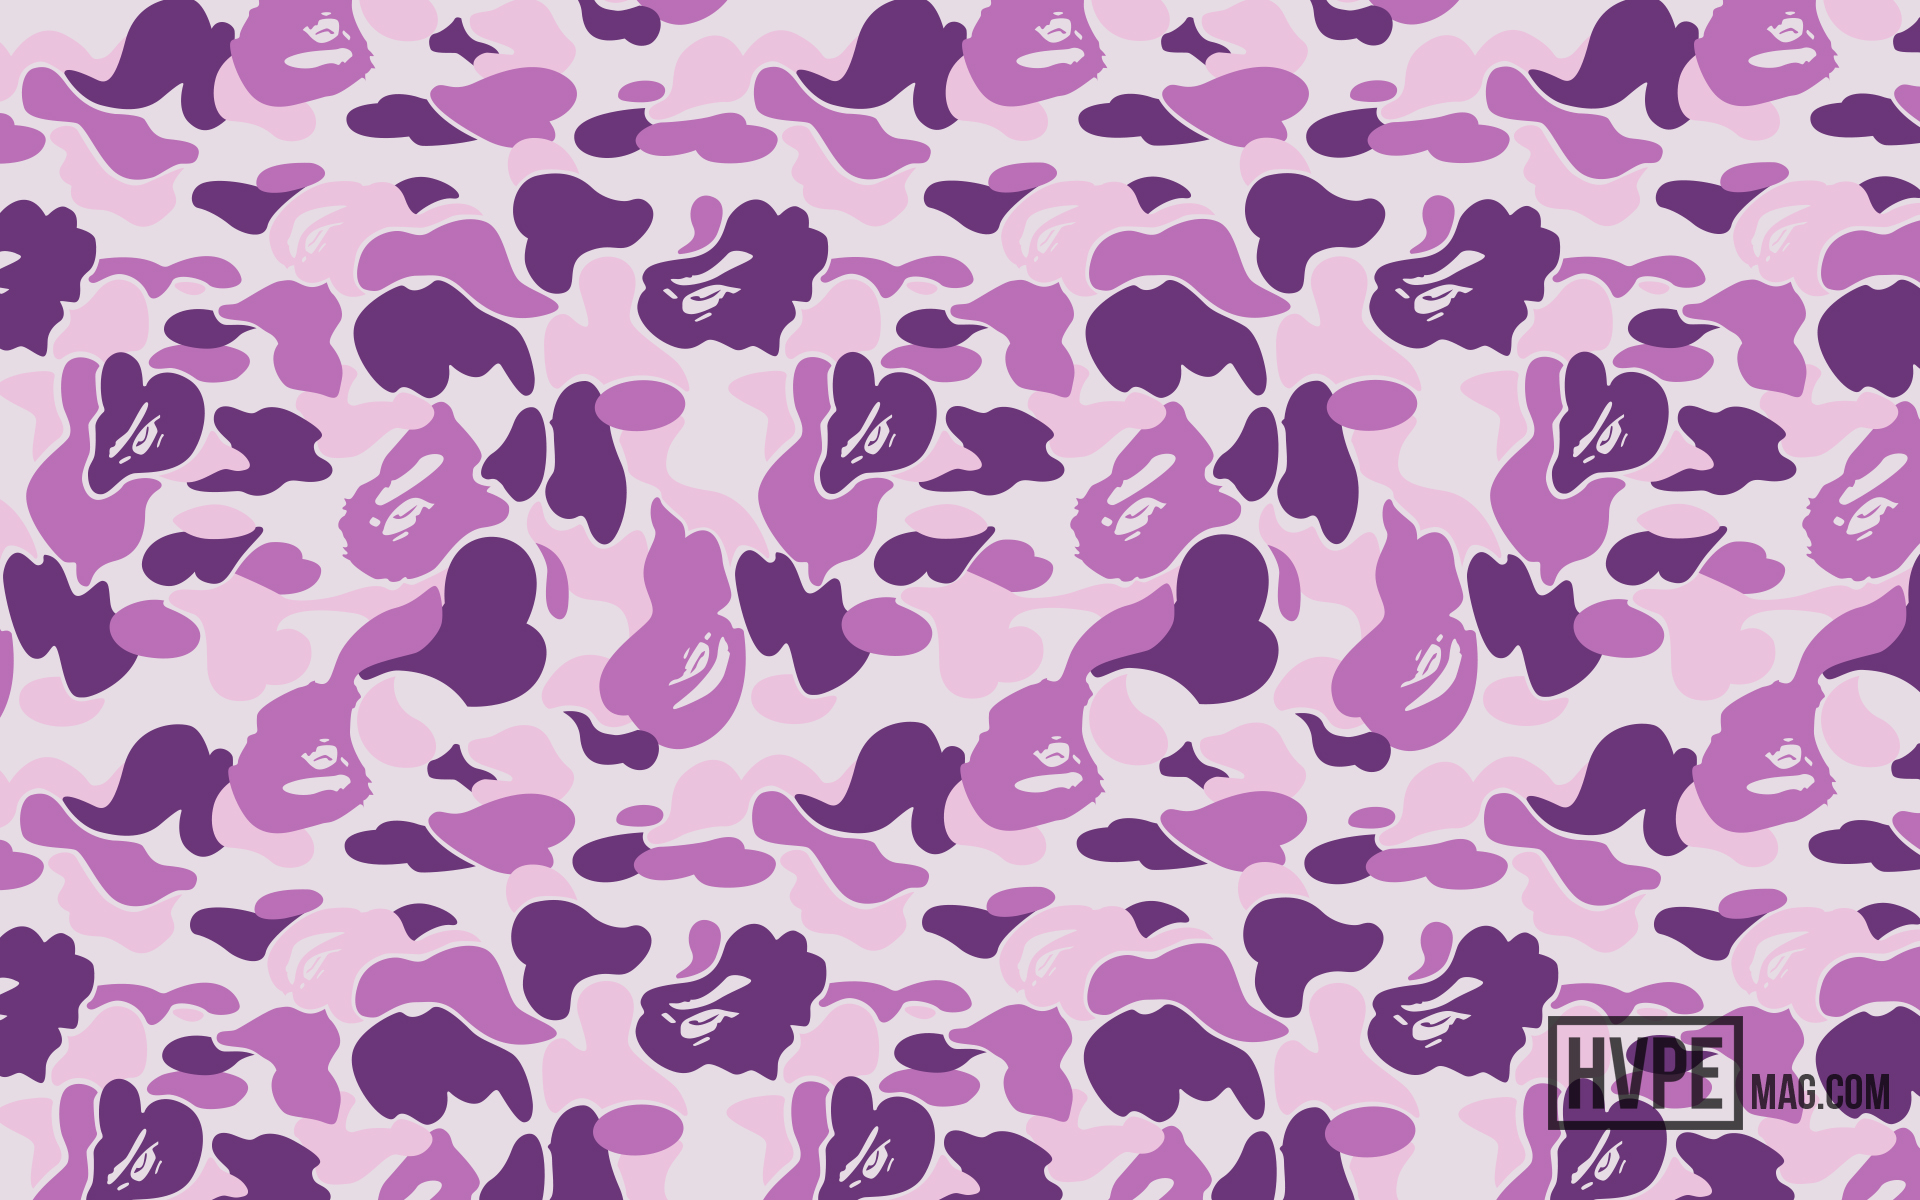 Bape Desktop Wallpaper Fogwlprs Arts Res - Background Bape Purple Camo - HD Wallpaper